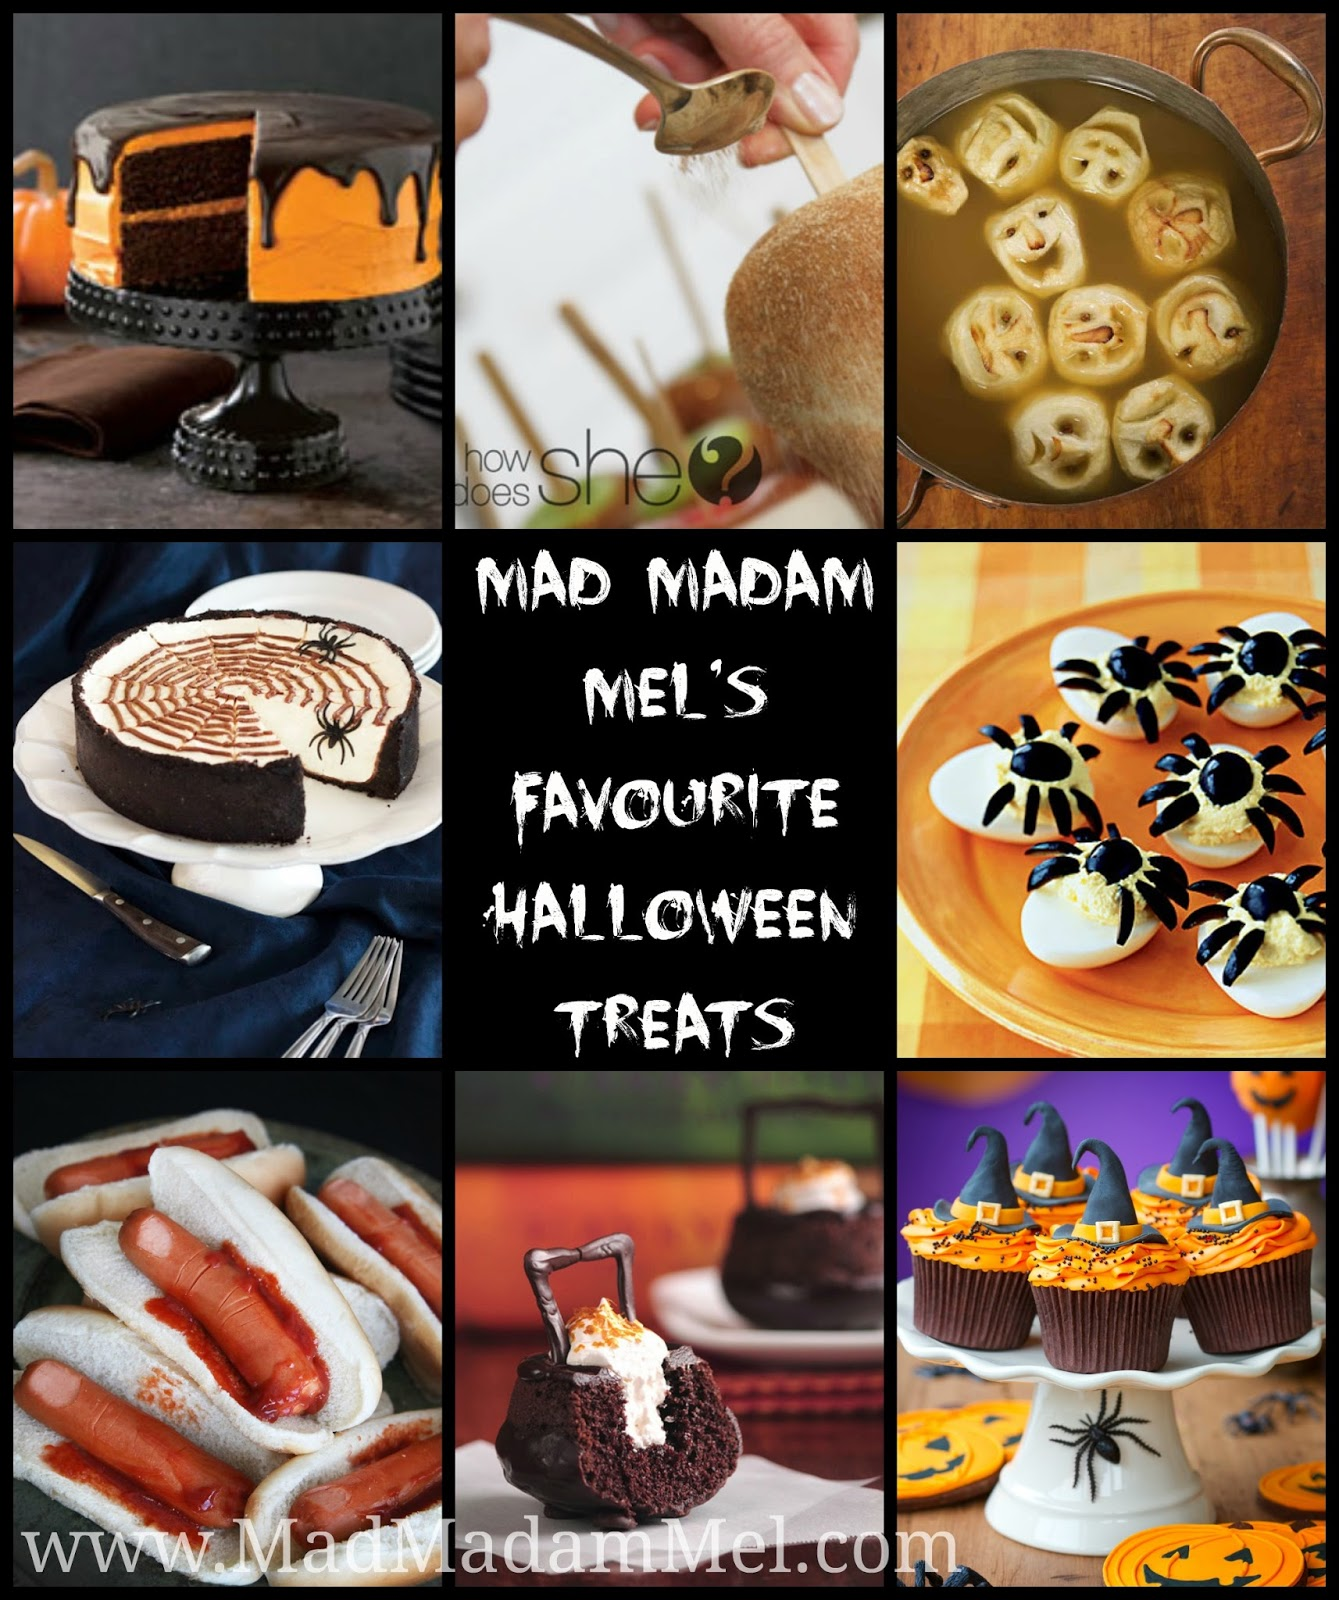 Much Of Today Im Going To Be Cooking Up A Storm Making Some The Goodies For Halloween Witches Tea Party Taking Place This Weekend